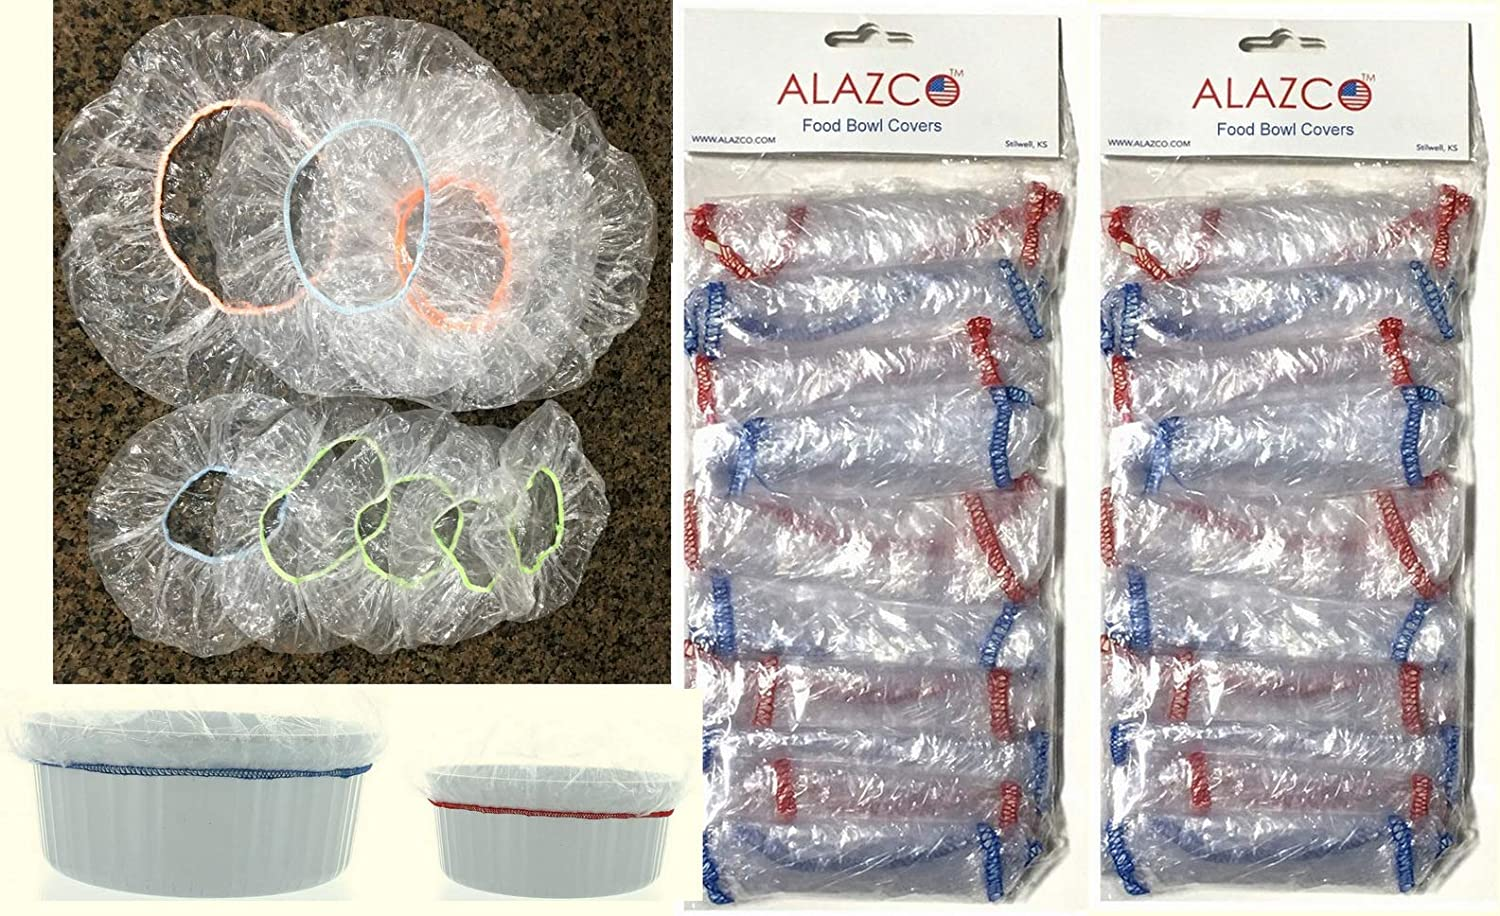 ALAZCO Pack of 20 Reusable Elastic Bowl Covers Clear Plastic 10 Large (up to 13